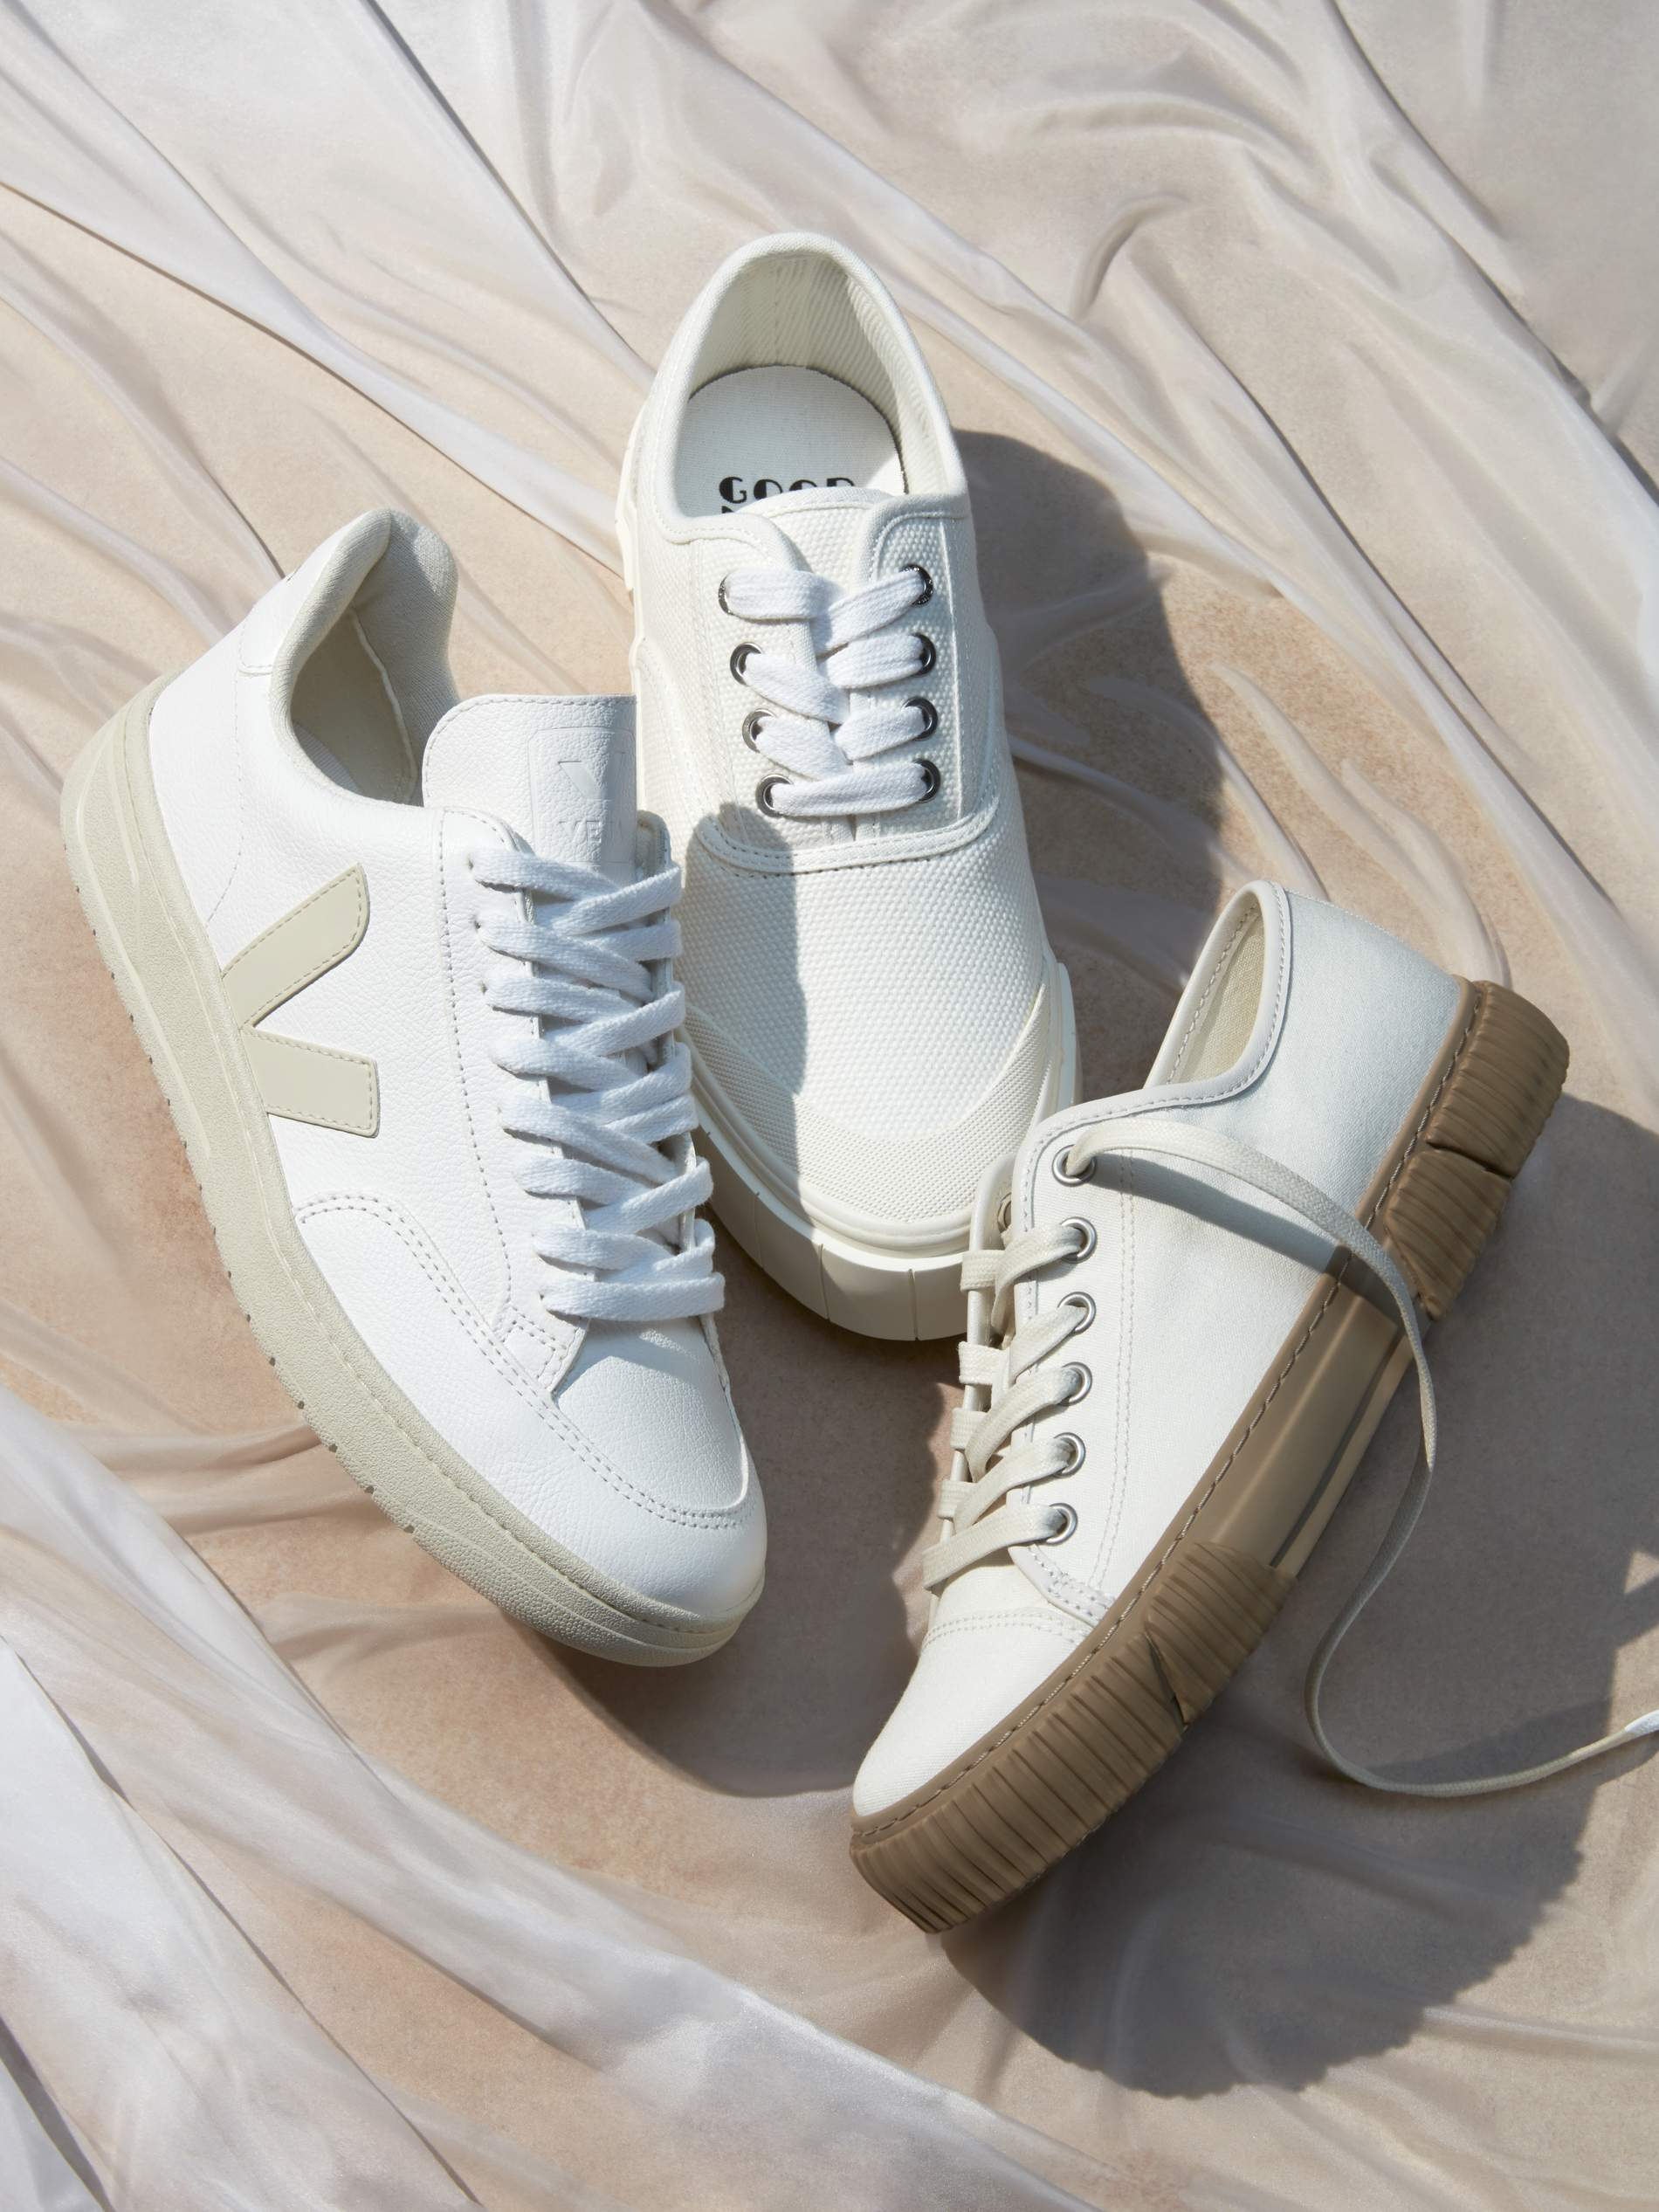 Sustainable Sneakers: The Brands